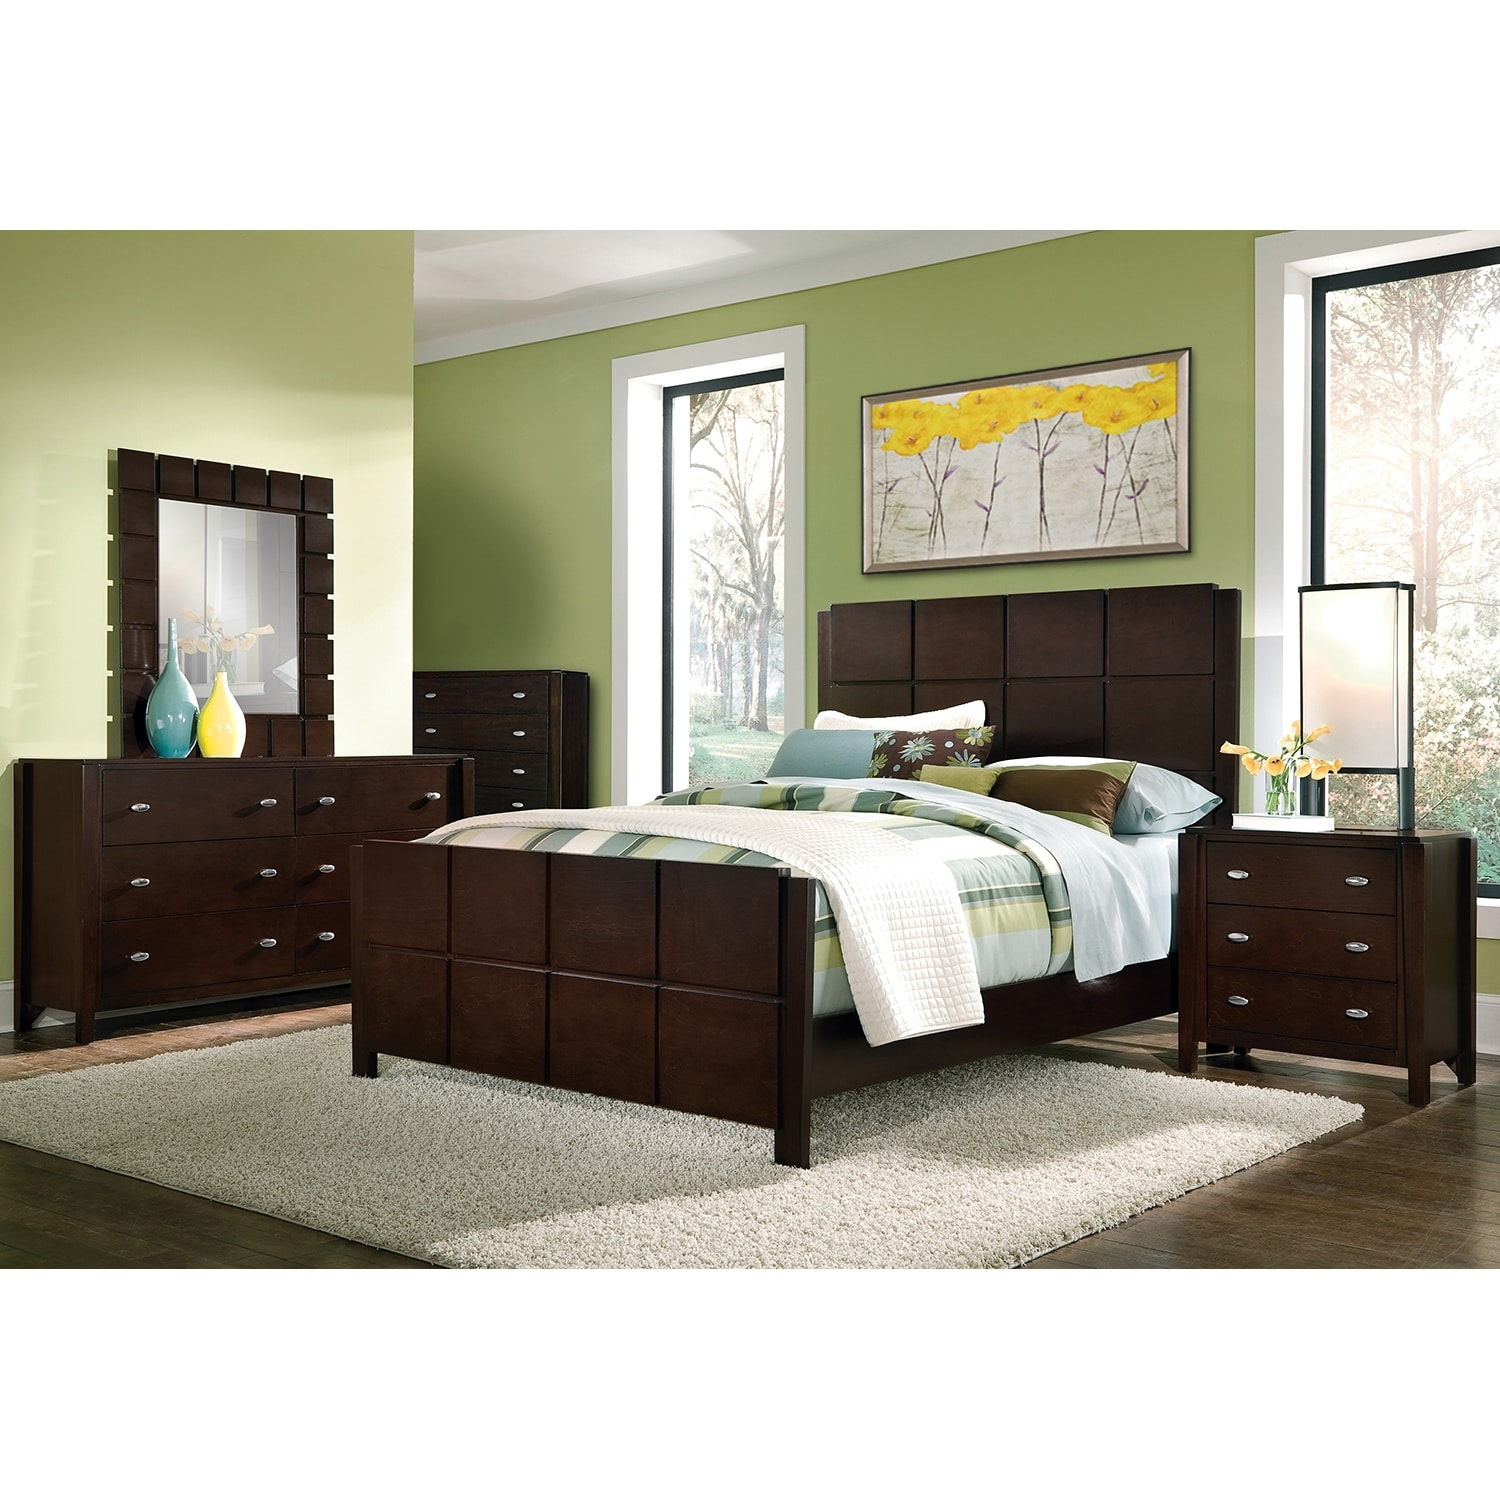 furniture us city pertaining to about and sets bedroom value mattresses